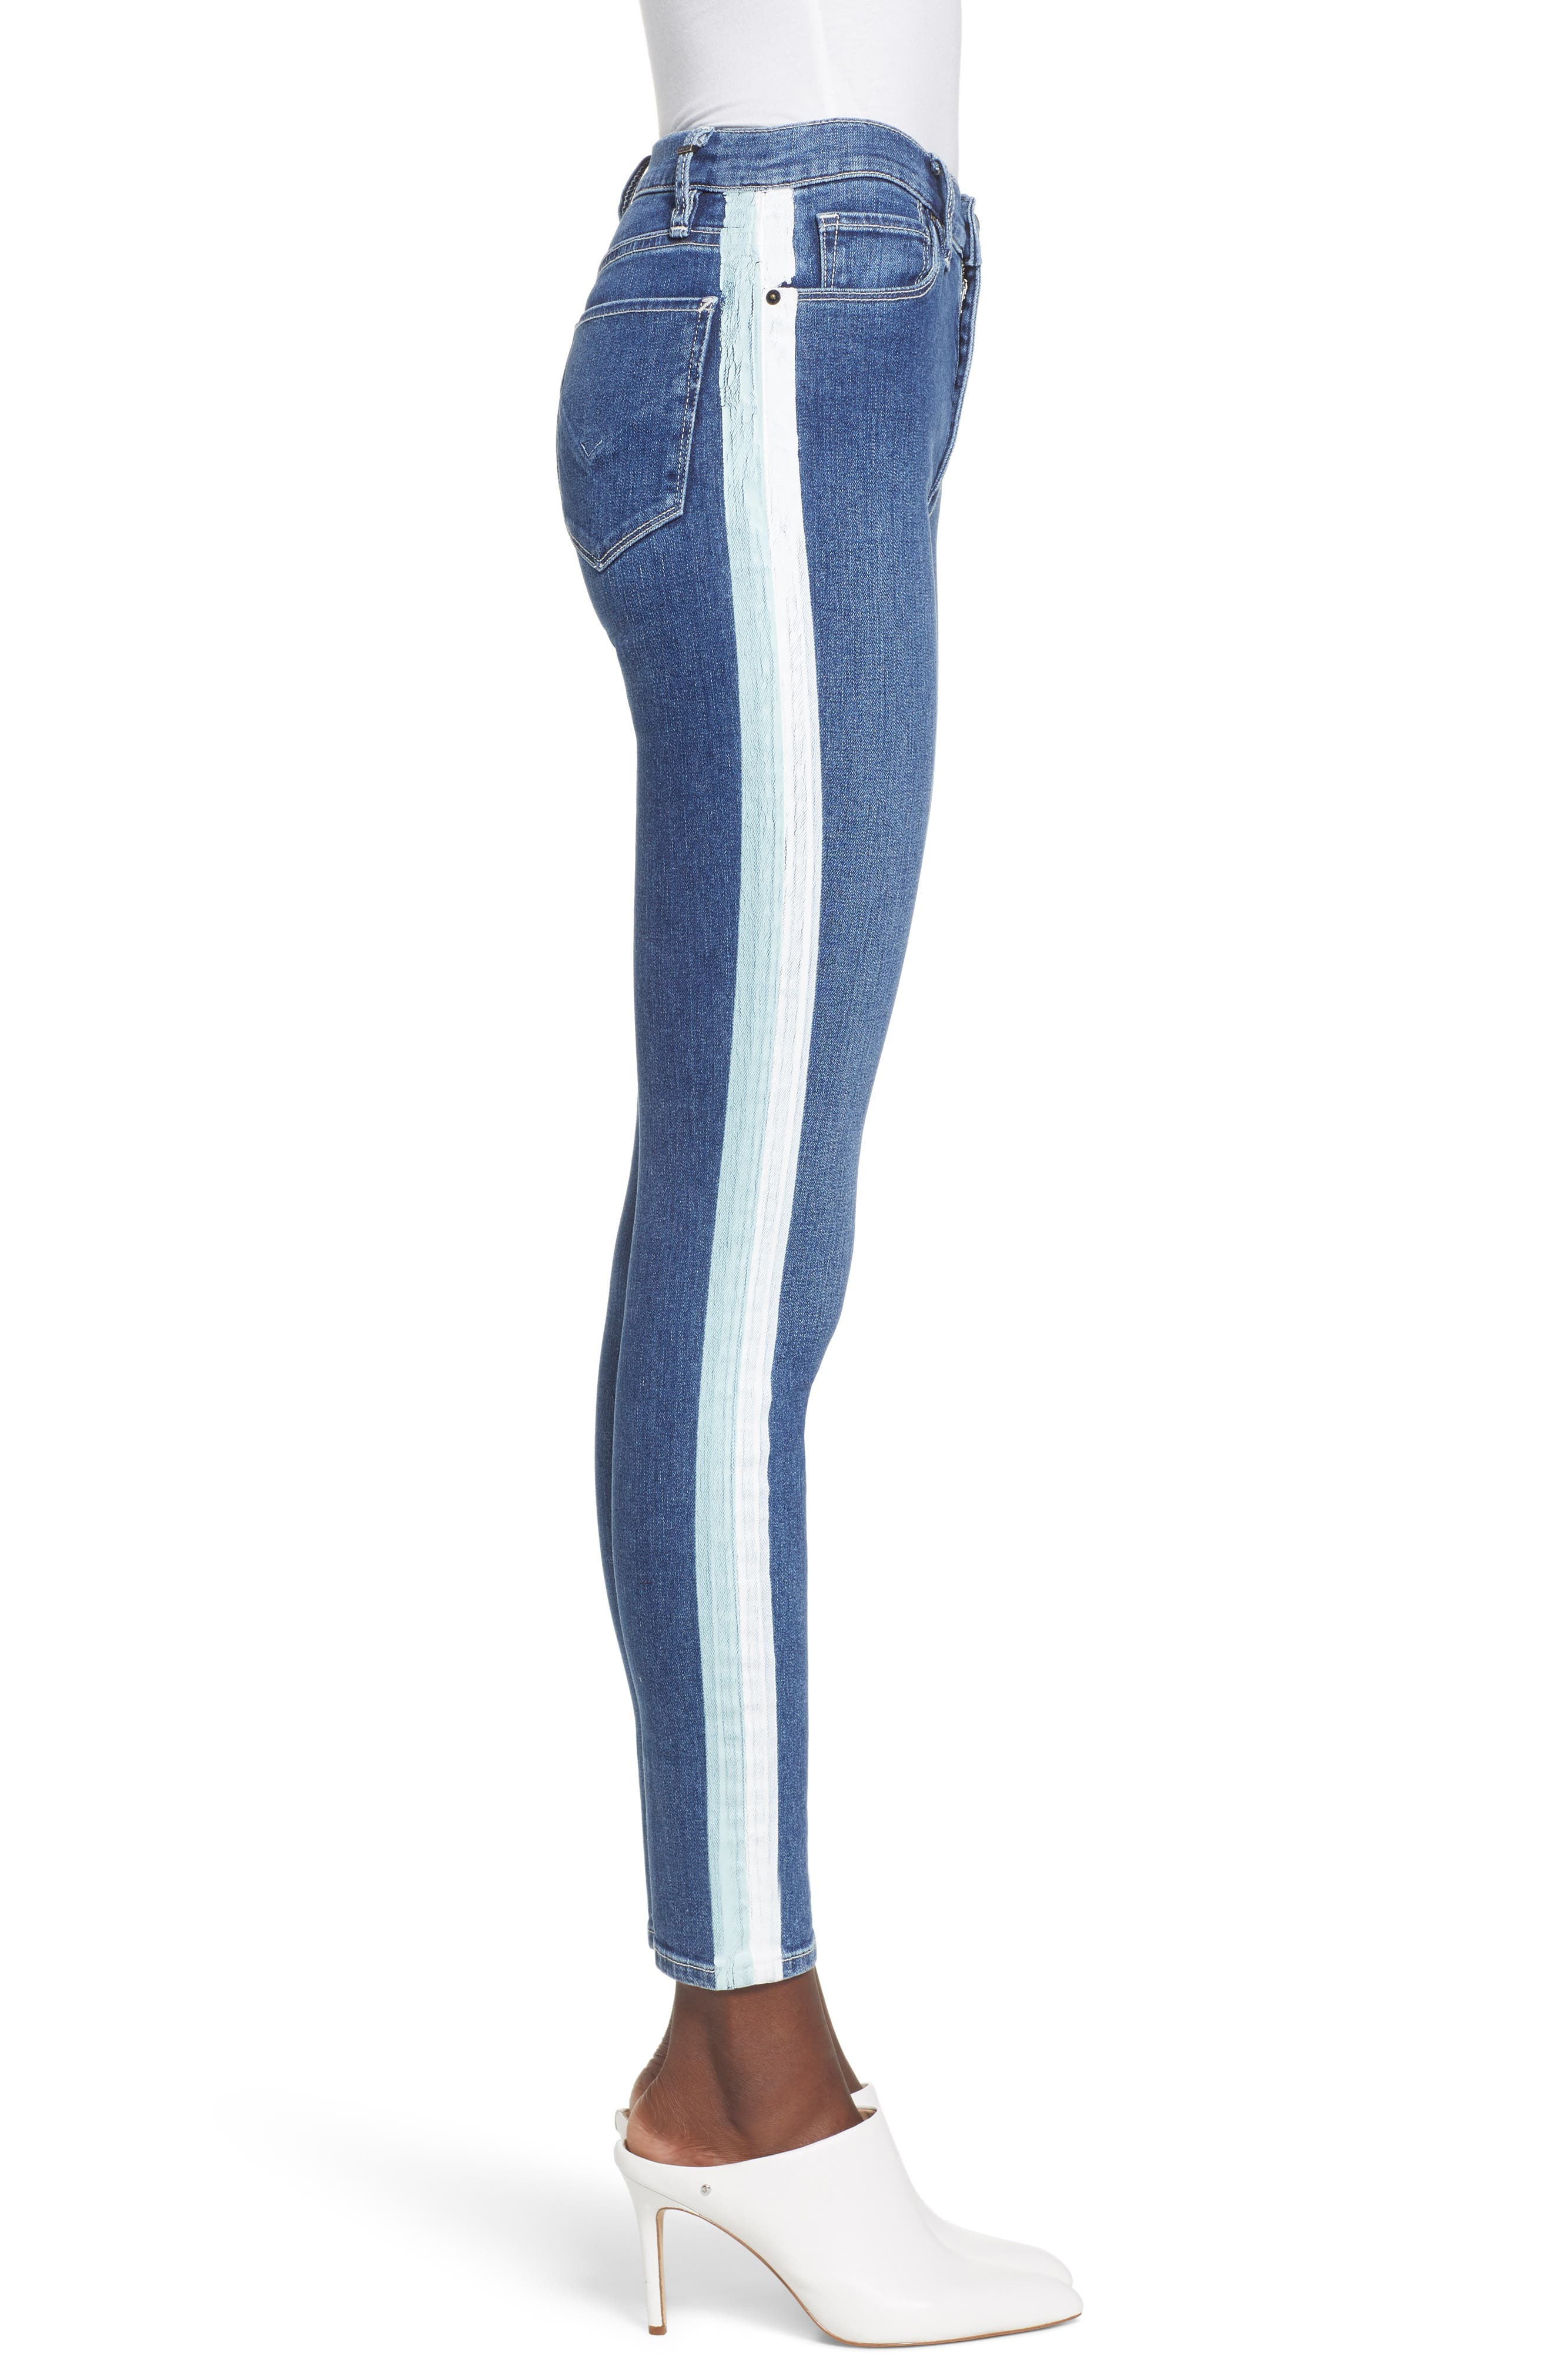 Barbara High Waist Ankle Skinny Jeans,                             Alternate thumbnail 3, color,                             403